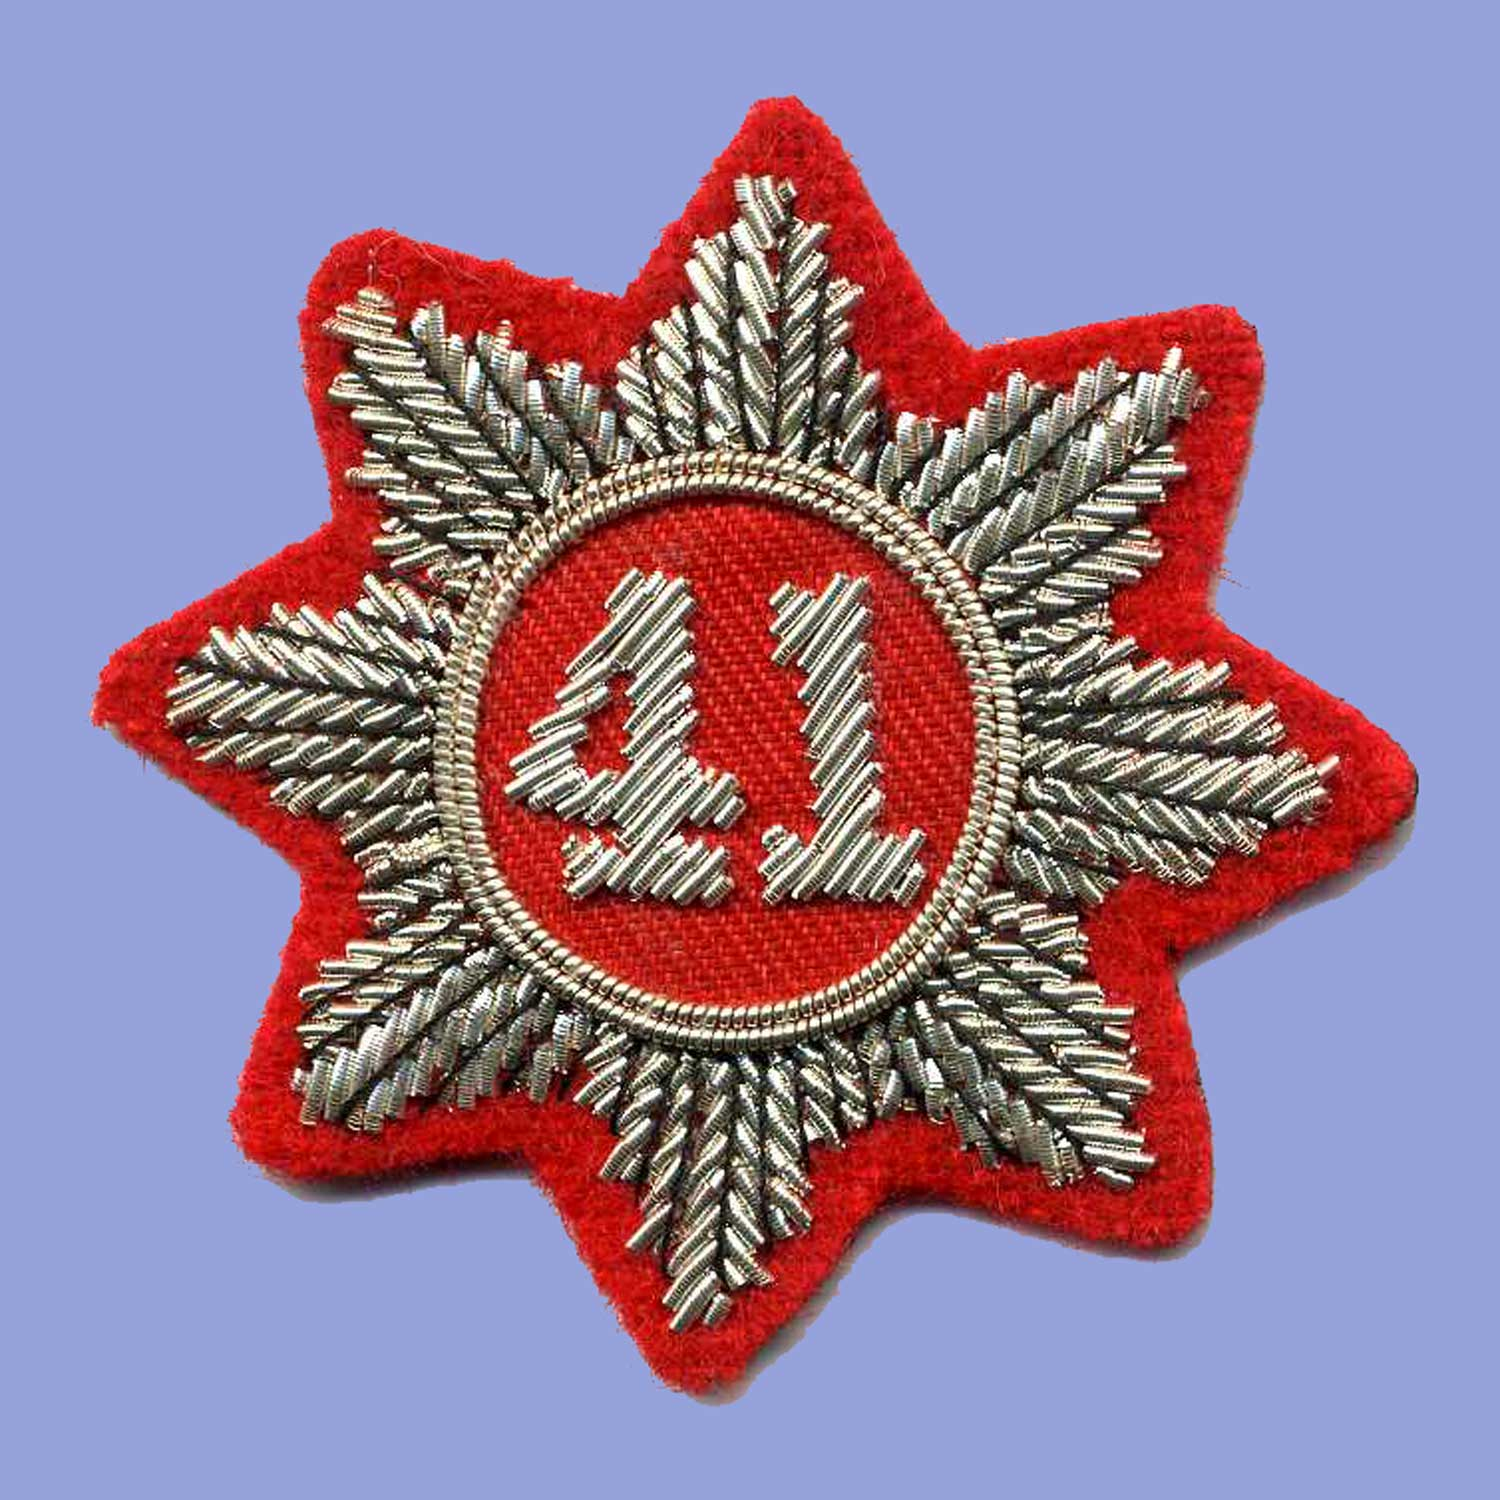 British, War of 1812, 41st Regt Turnback Badge (silver)